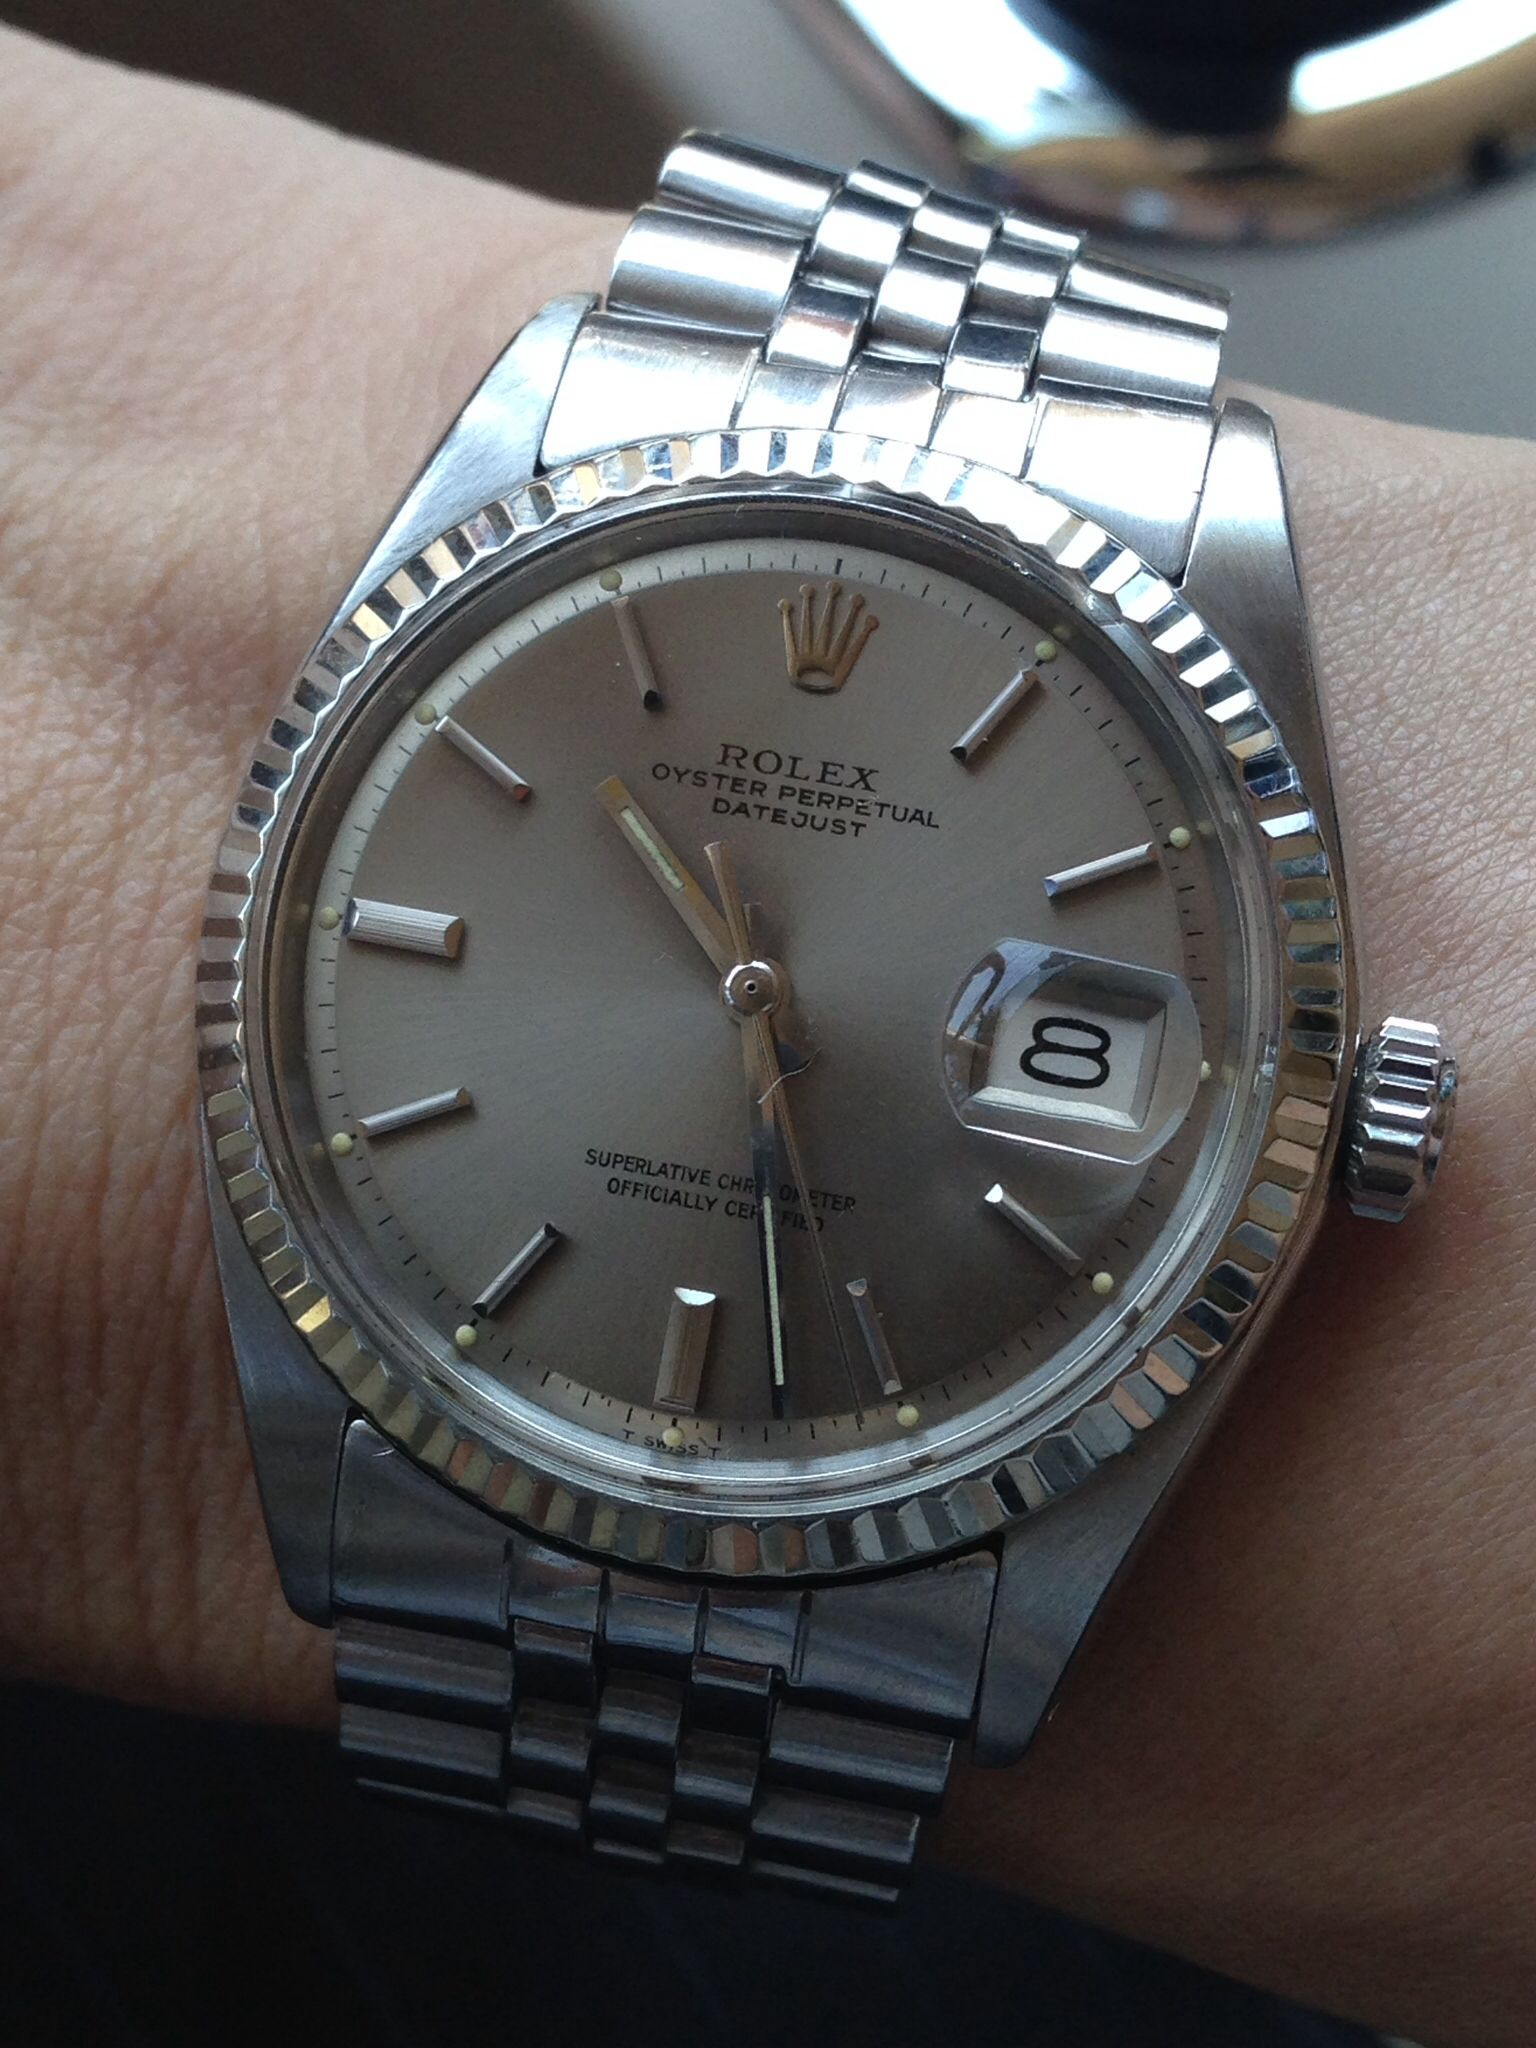 3518b27c558 Datejust 1601 with light grey pie-pan dial Rolex Watches